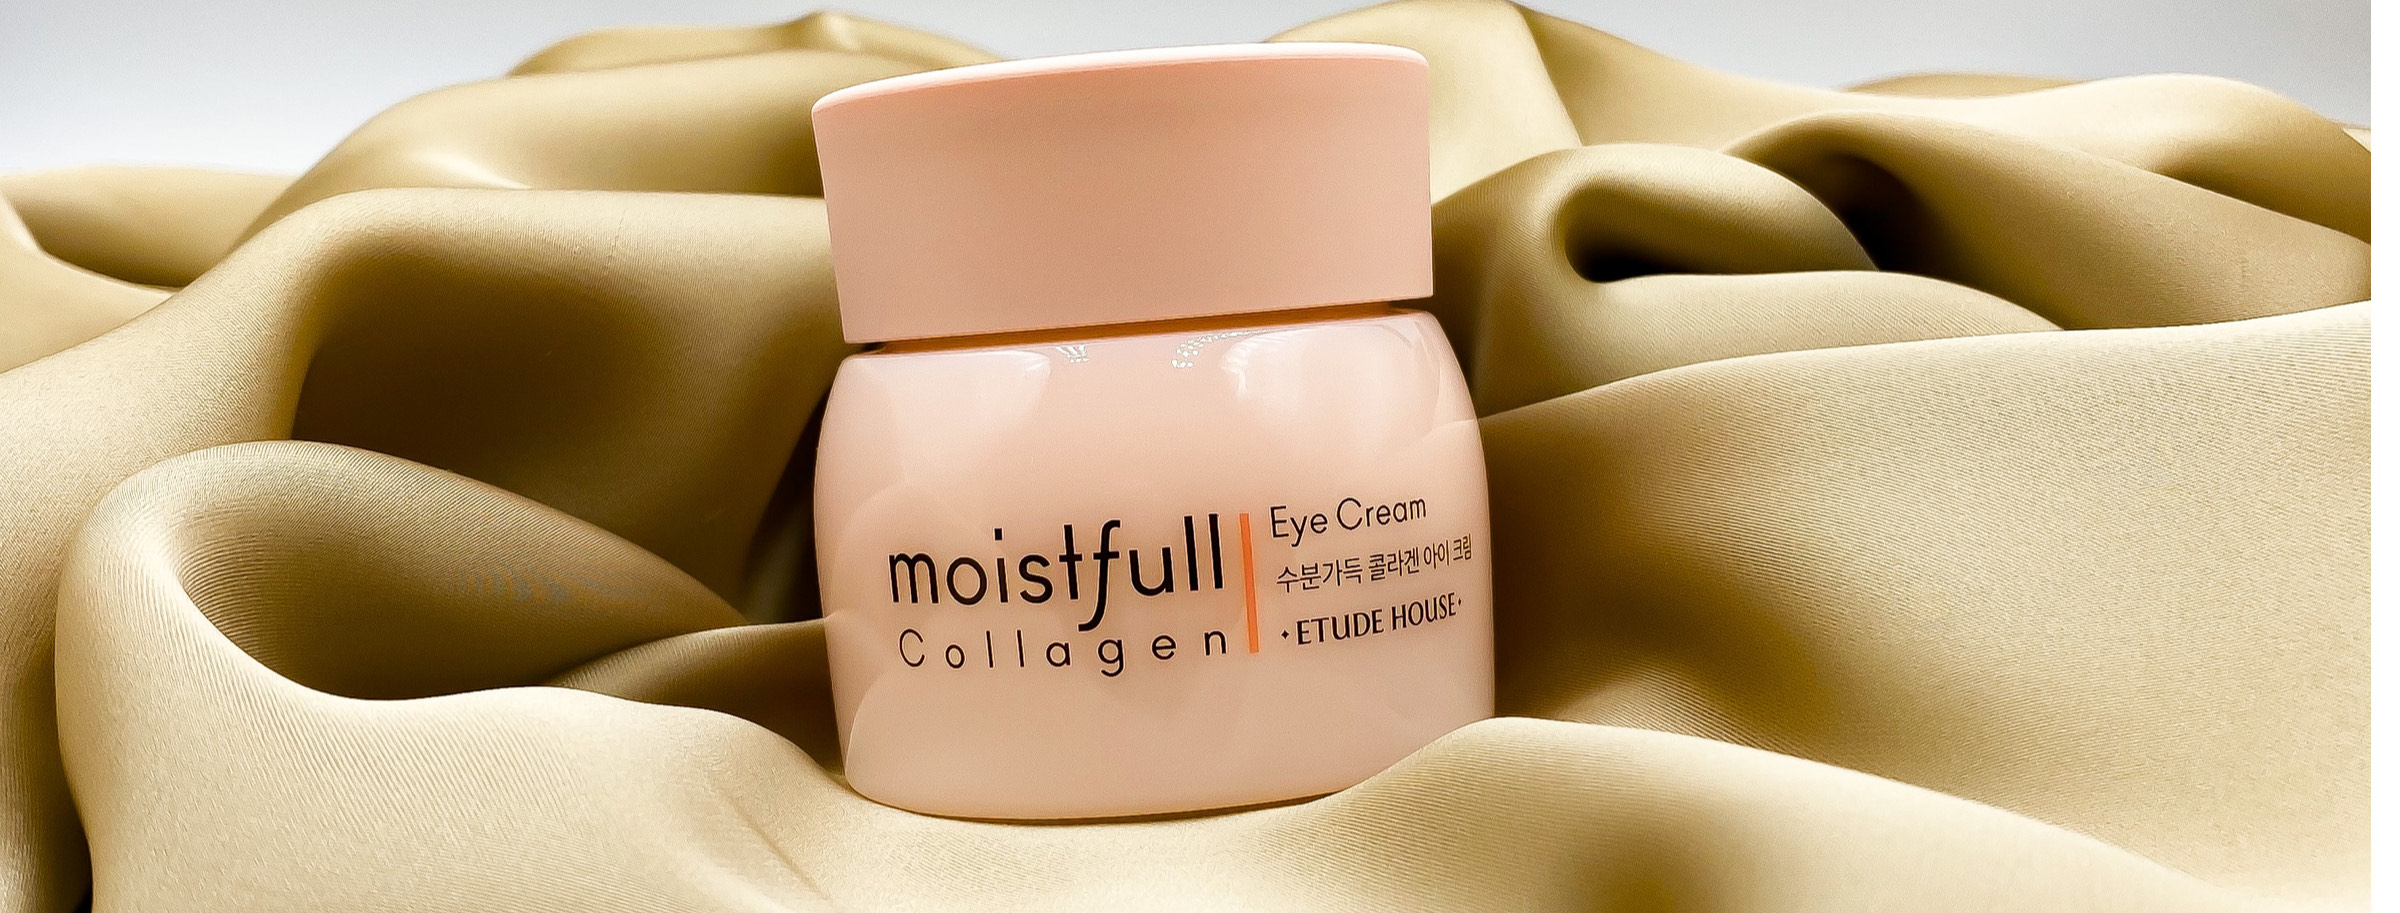 Review | Etude House Moistfull Collagen Eye Cream